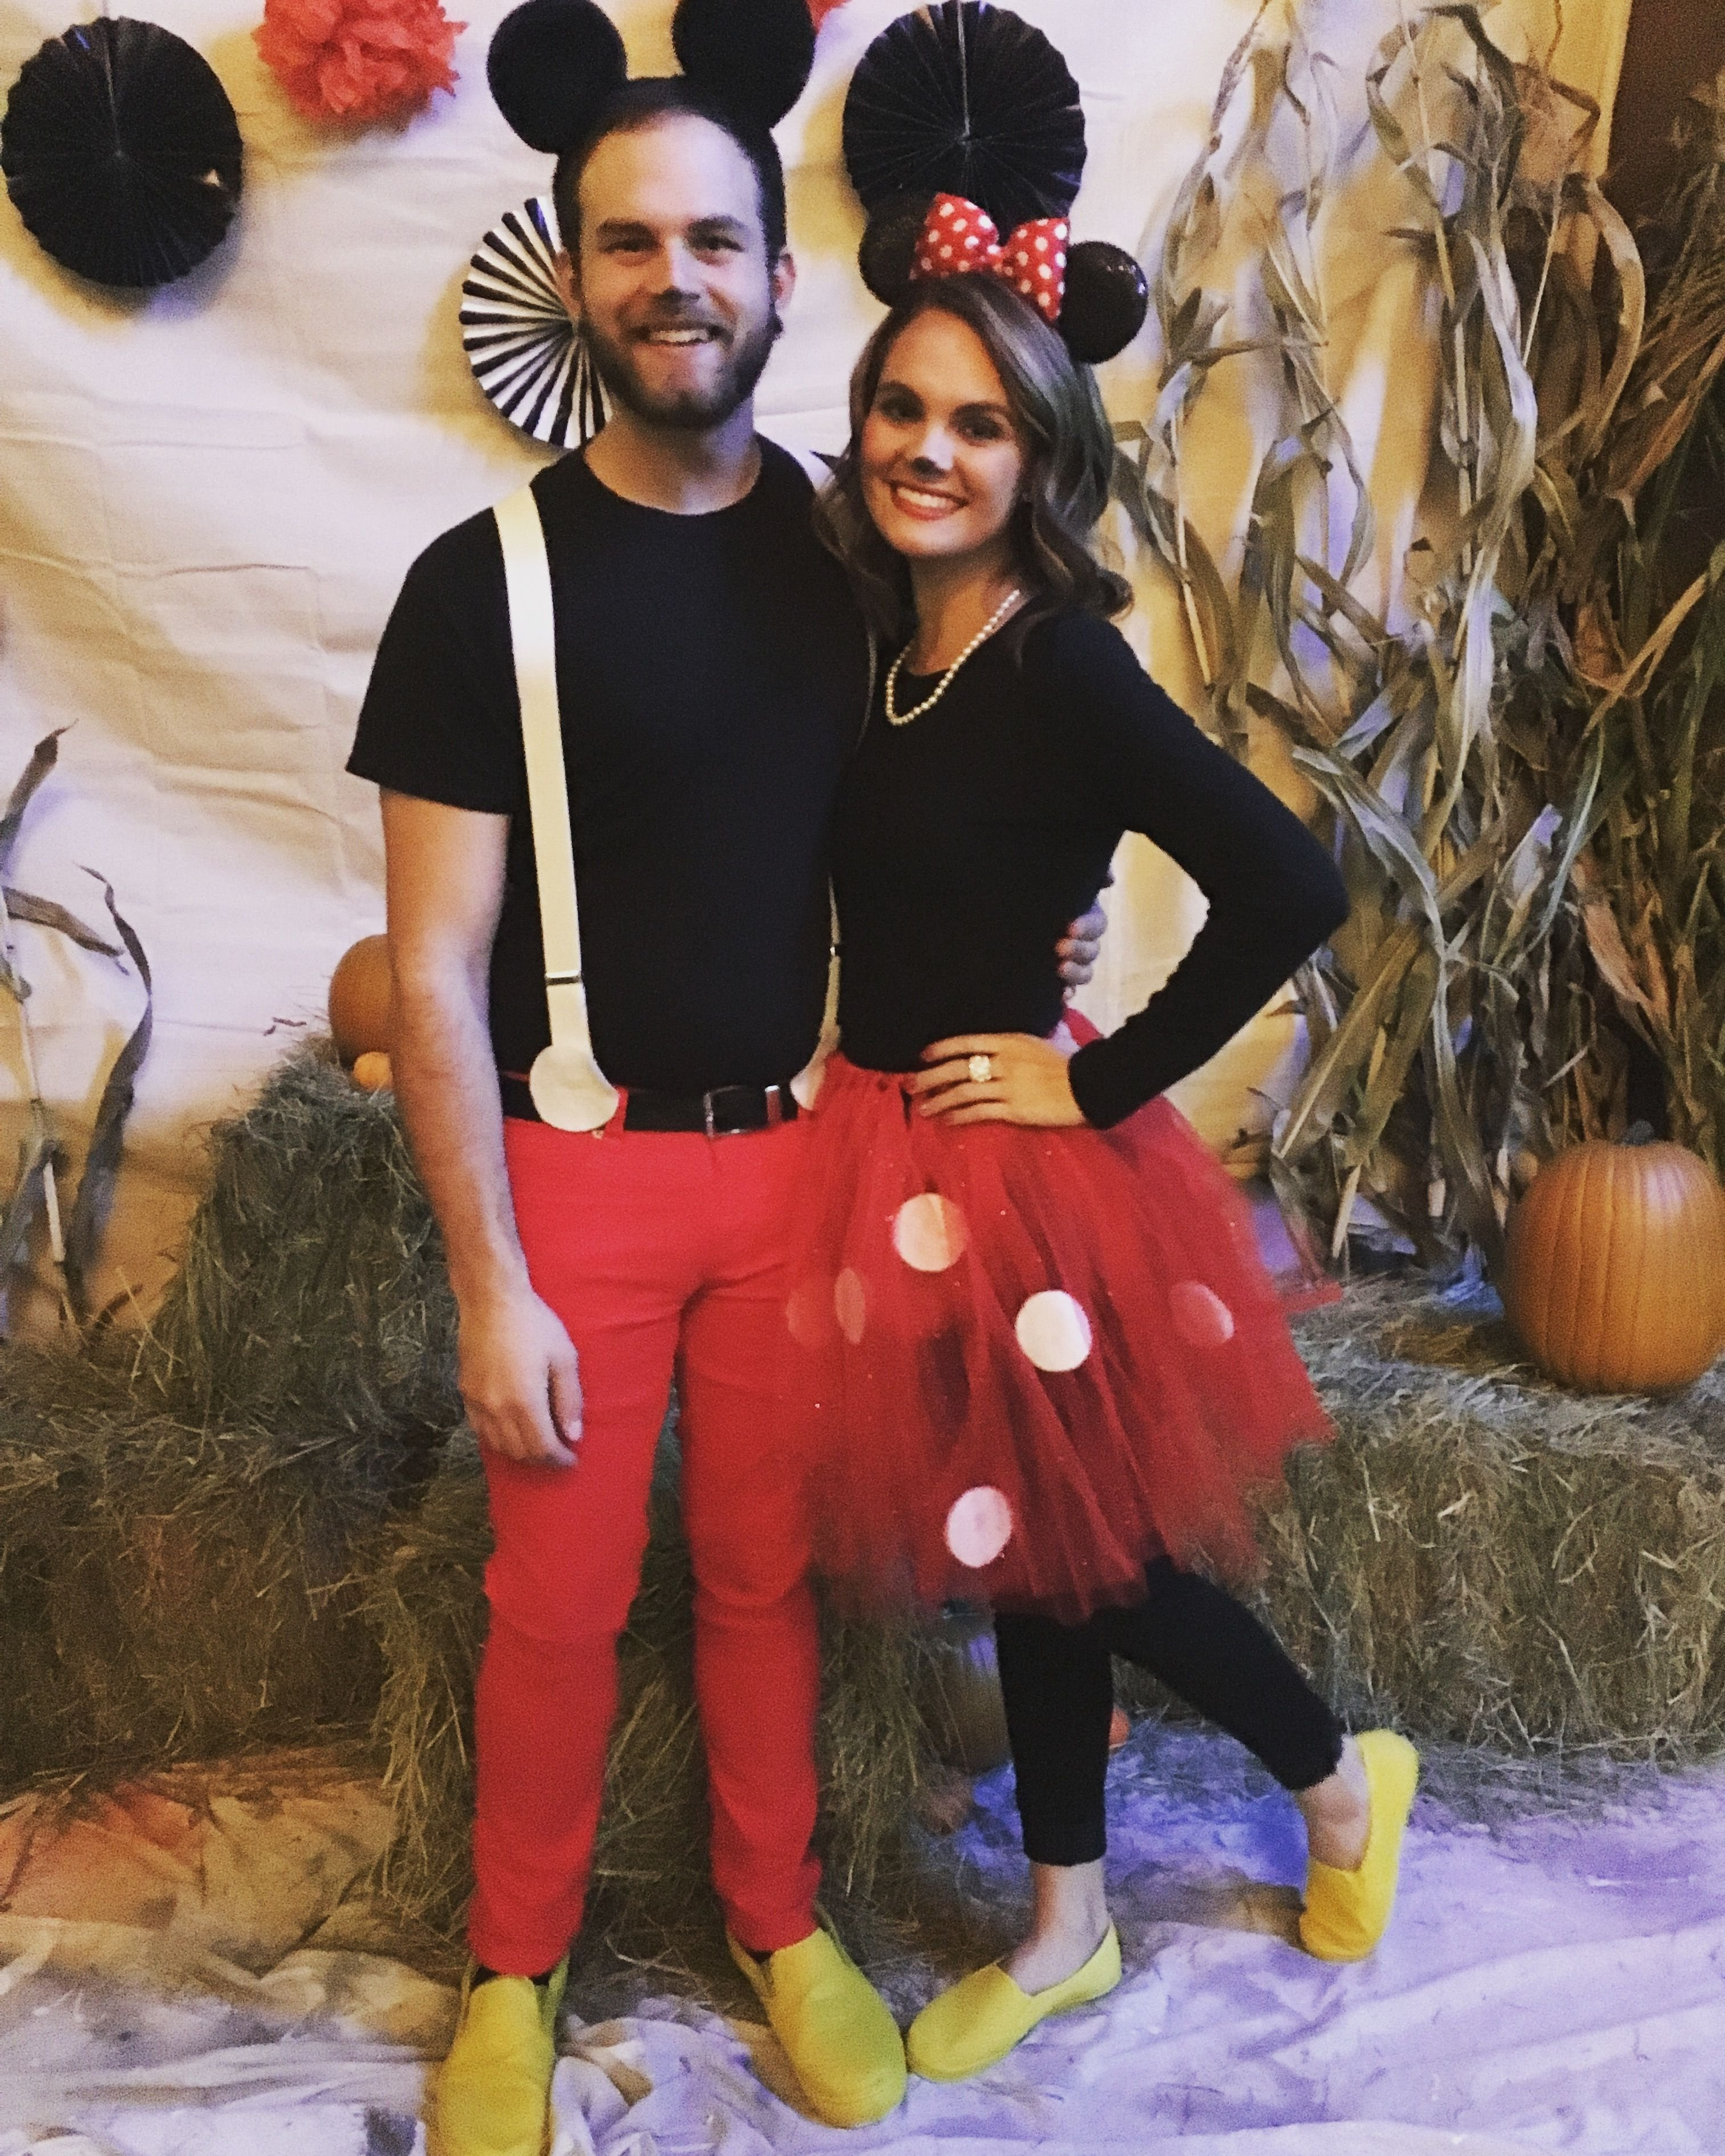 10 Perfect Ideas For Couples Halloween Costumes mickey and minnie mouse halloween couple costume 4 2020